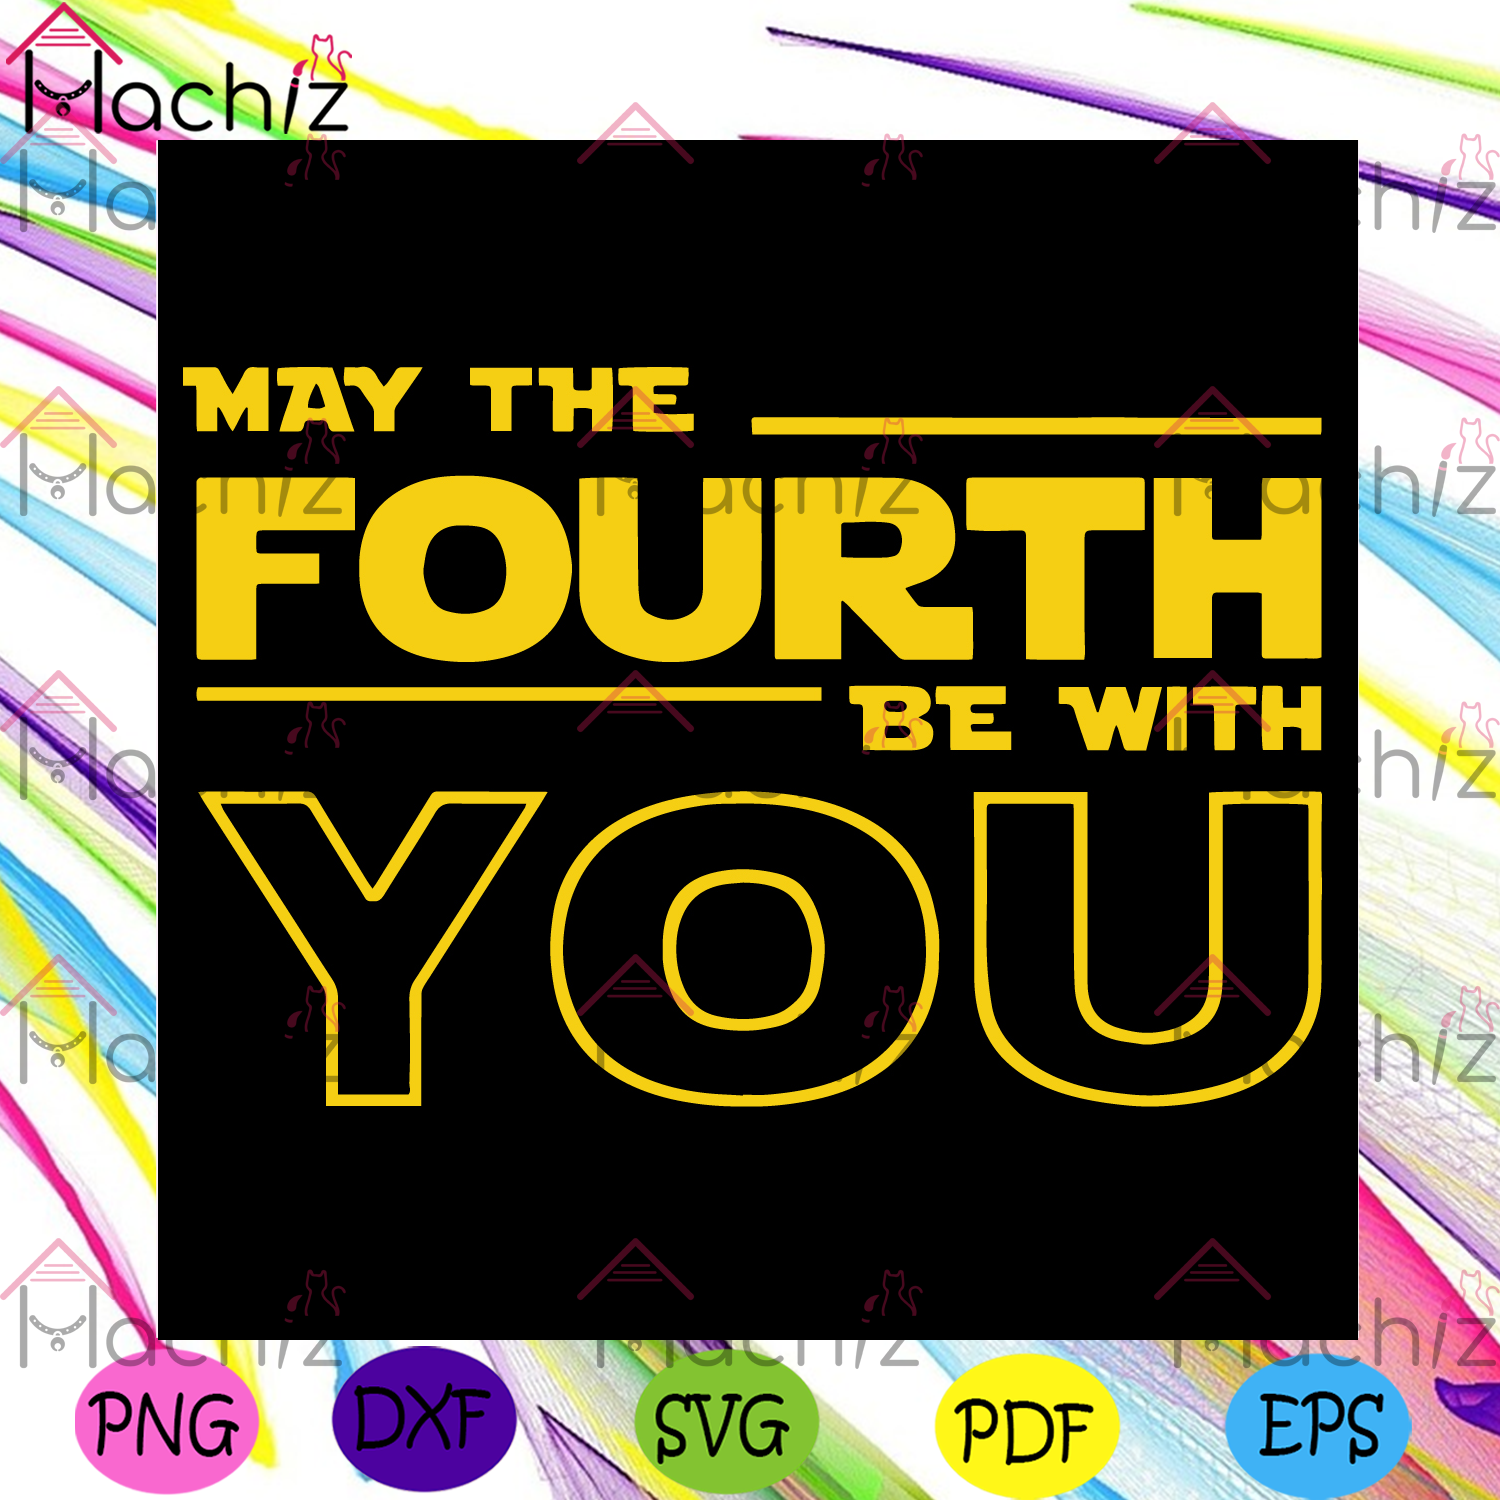 May the fourth be with you svg star wars svg, may 4th svg